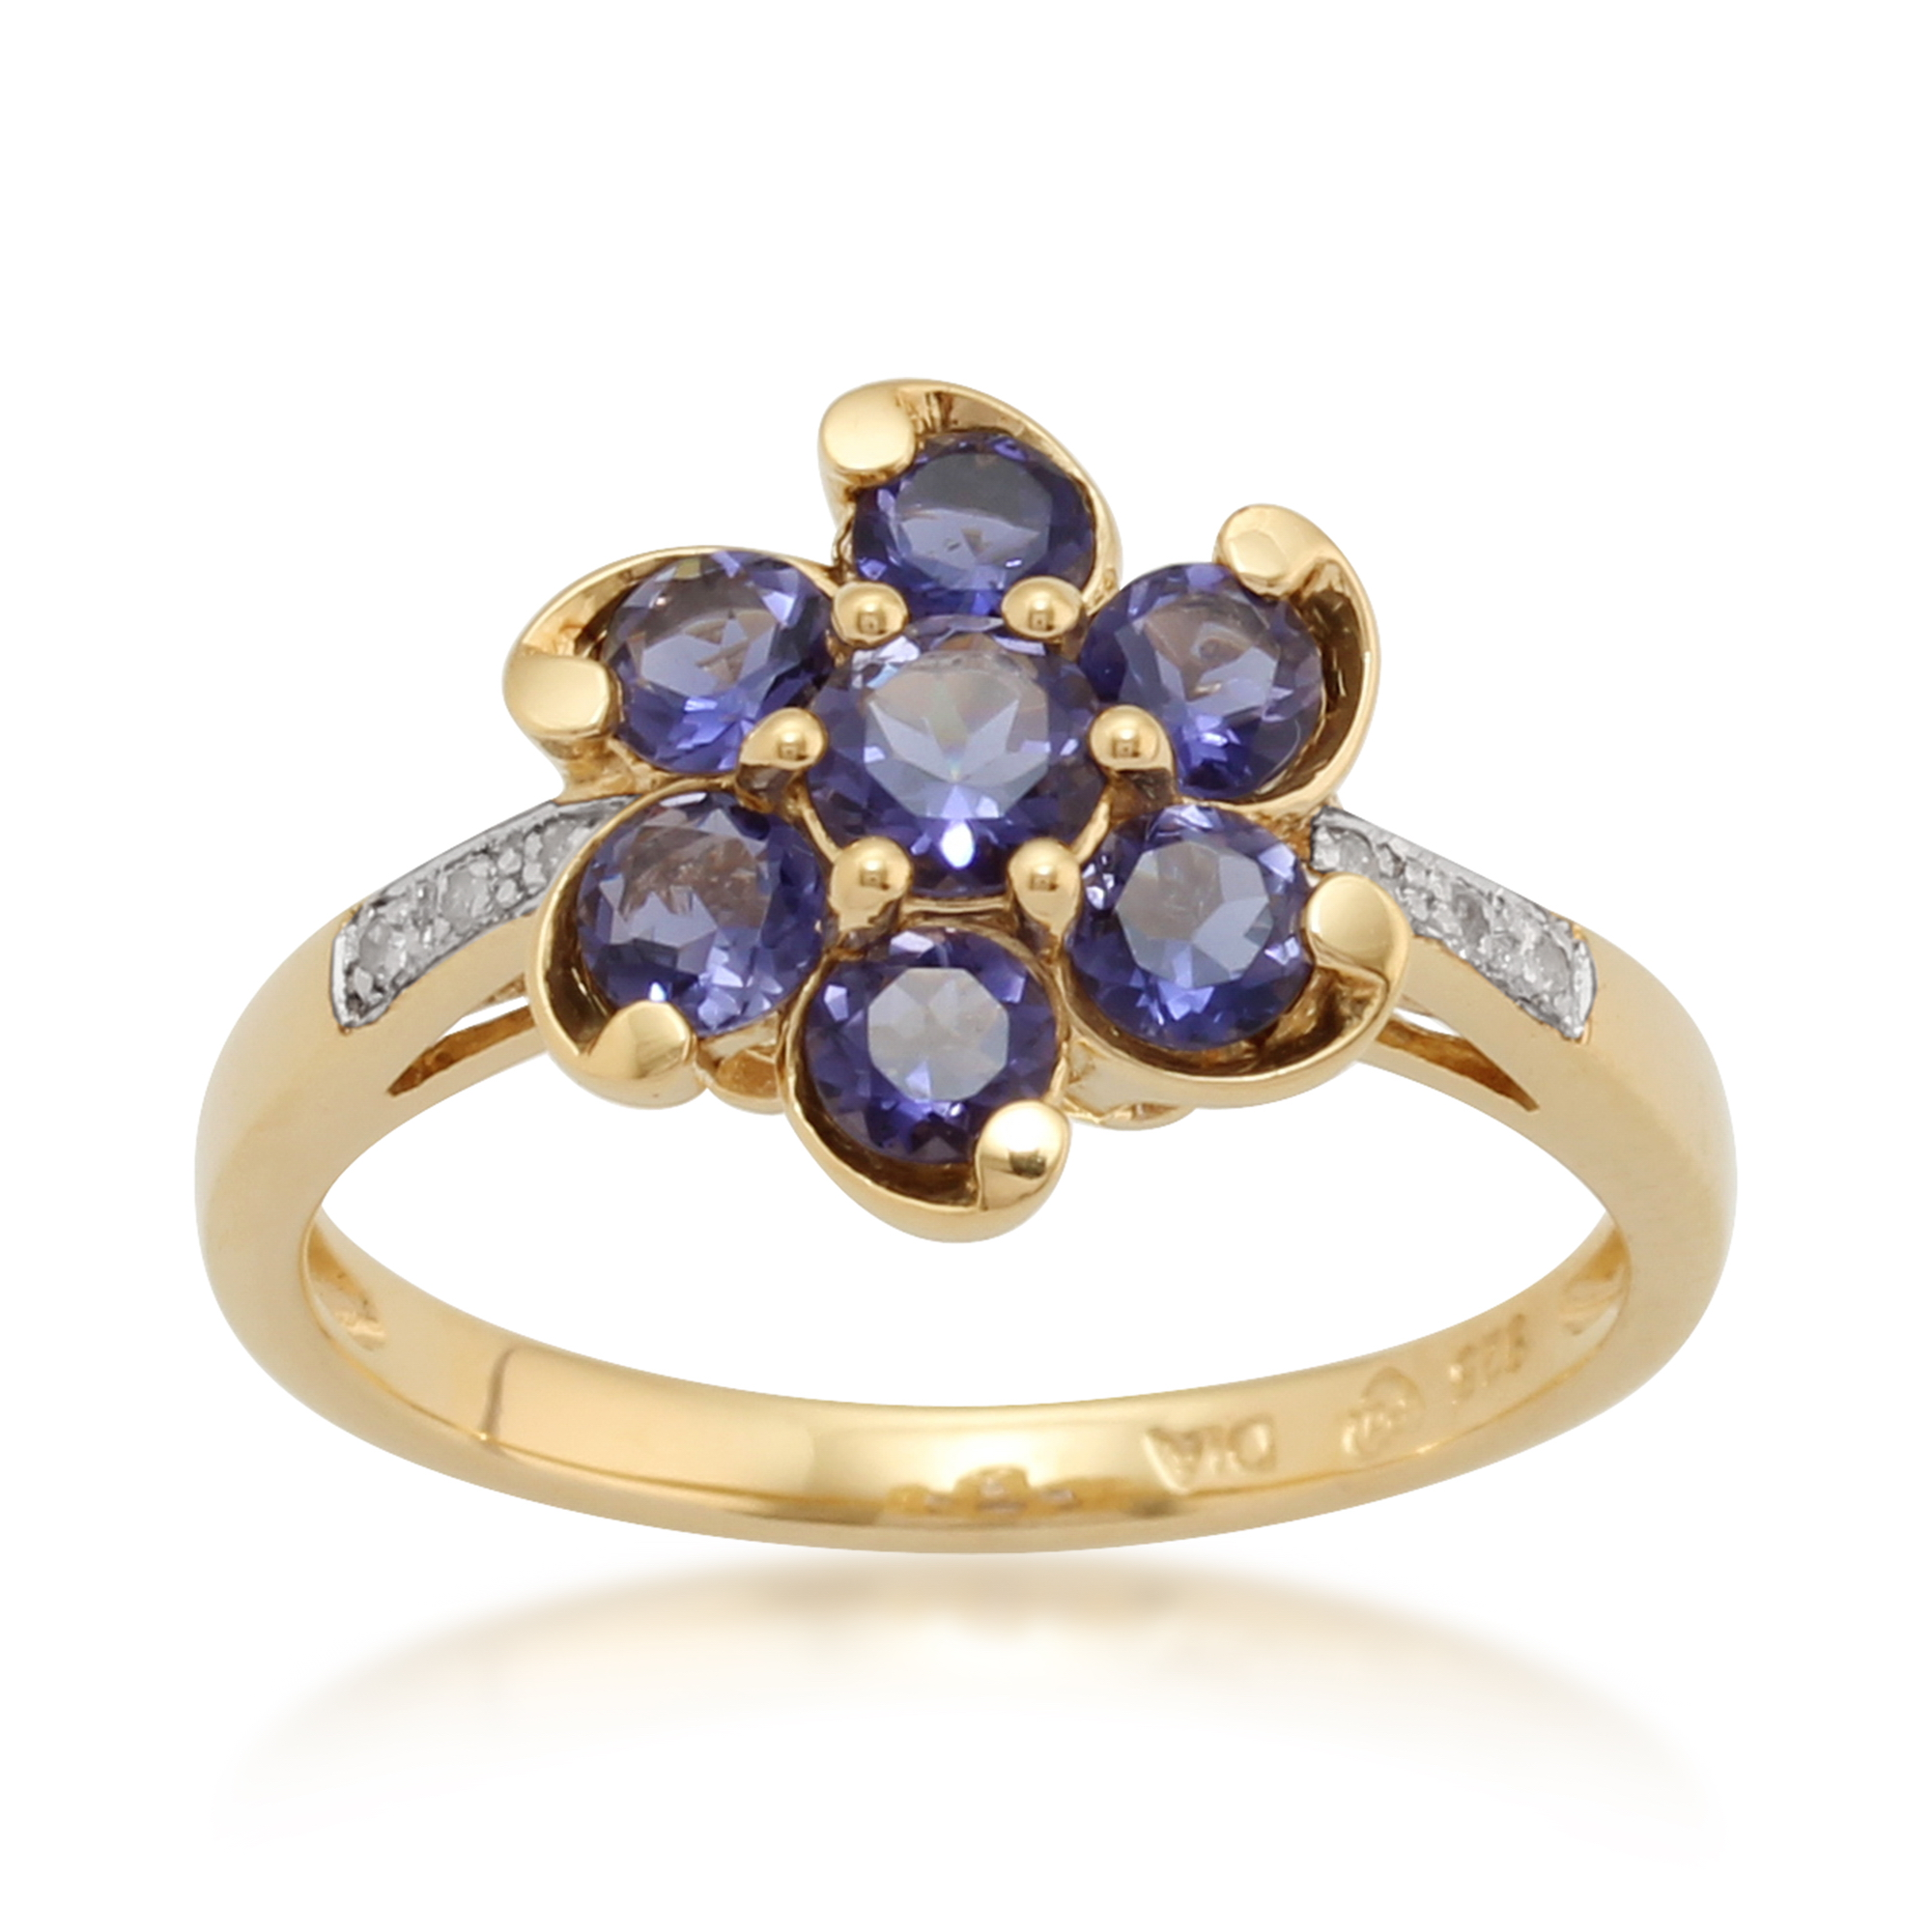 Gemondo Gold Plated Sterling Silver 0.85ct Iolite & 2.4pt Diamond Flower Ring